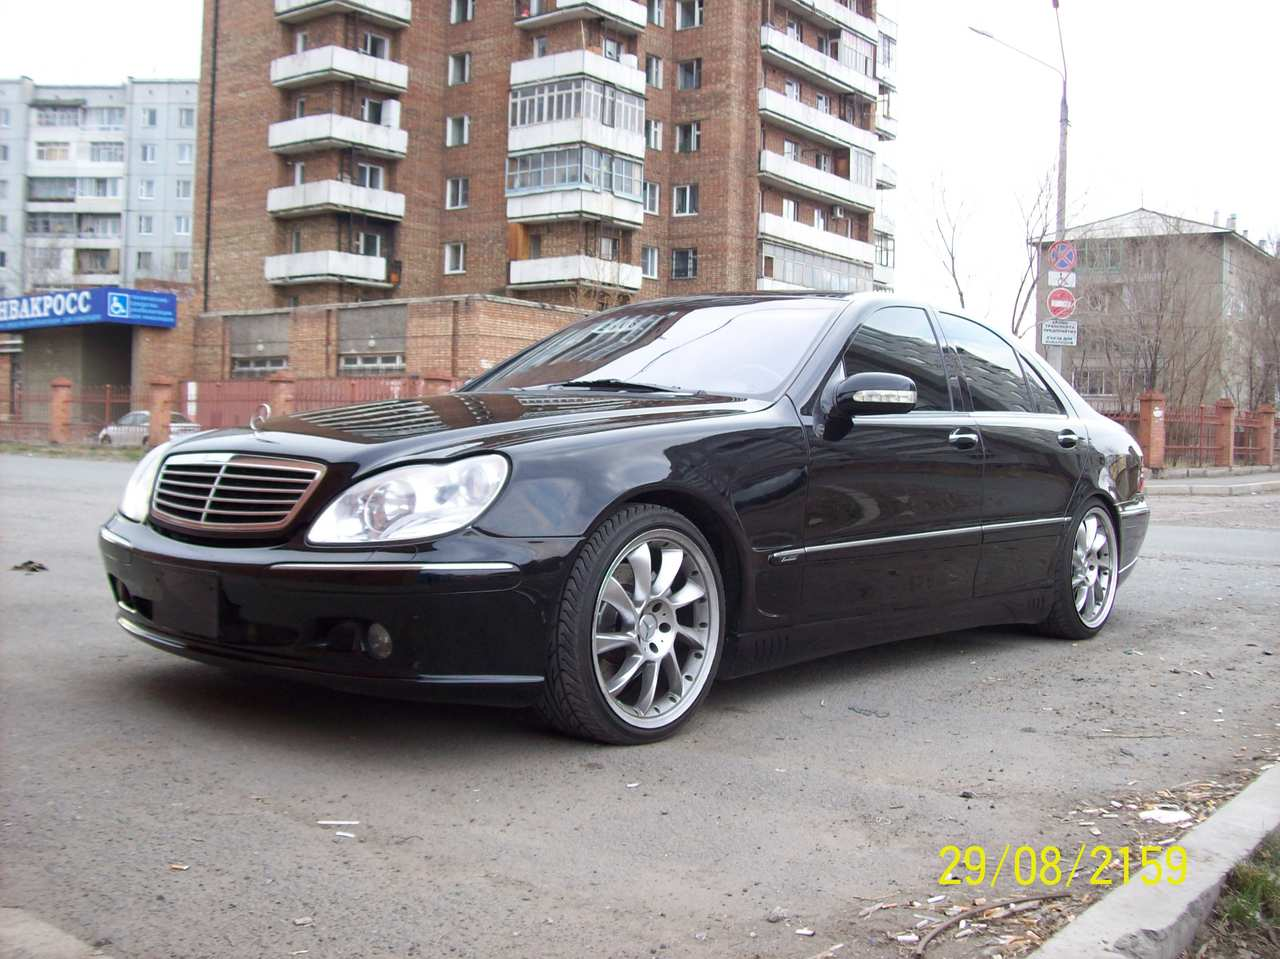 used 2003 mercedes benz s class photos 5439cc gasoline fr or rr automatic for sale. Black Bedroom Furniture Sets. Home Design Ideas